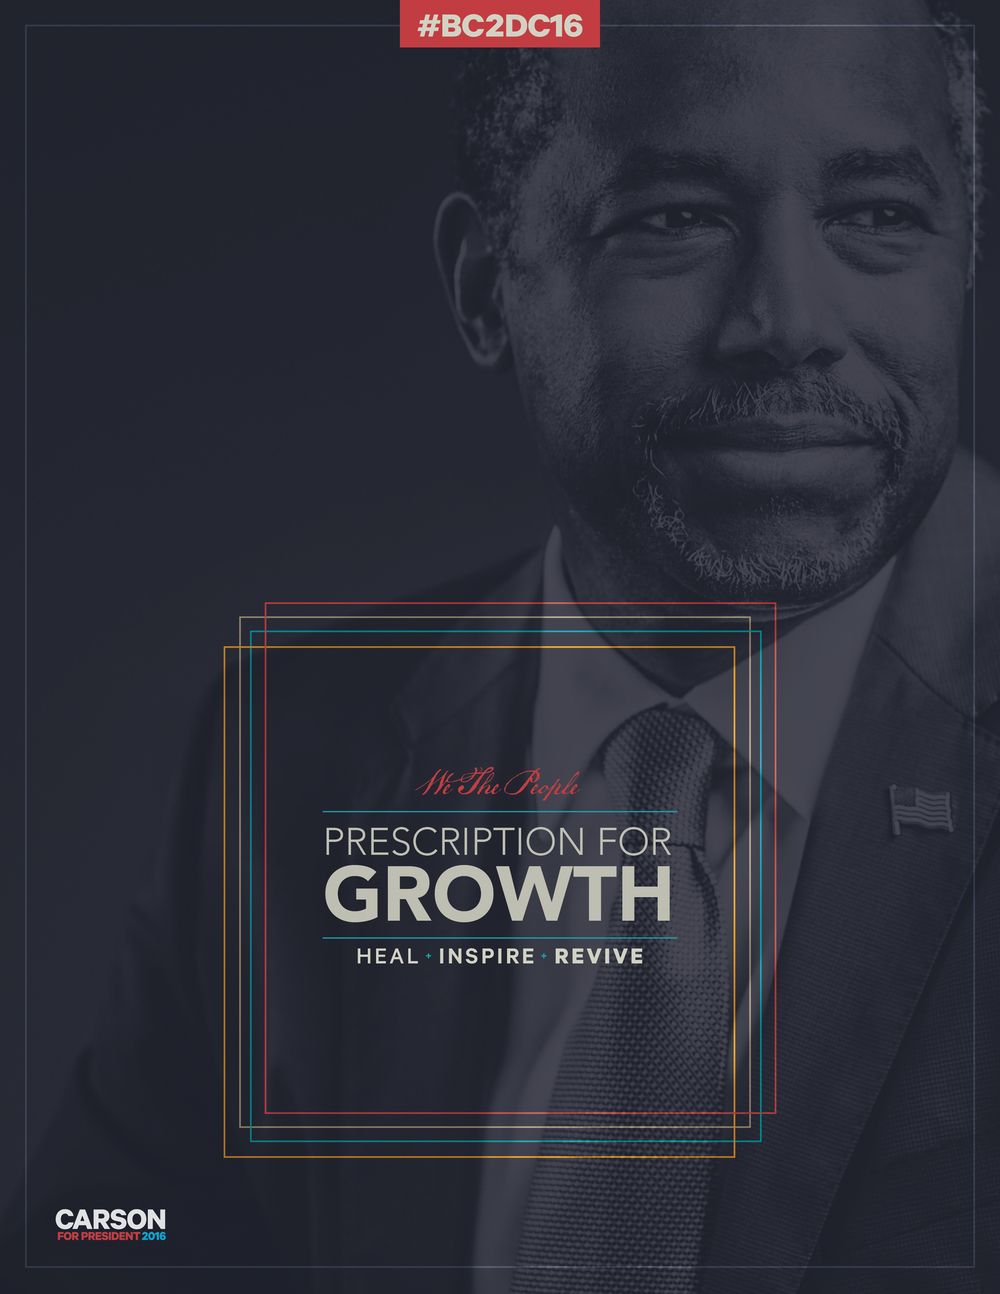 Tax Plan policy cover for Carson 2016